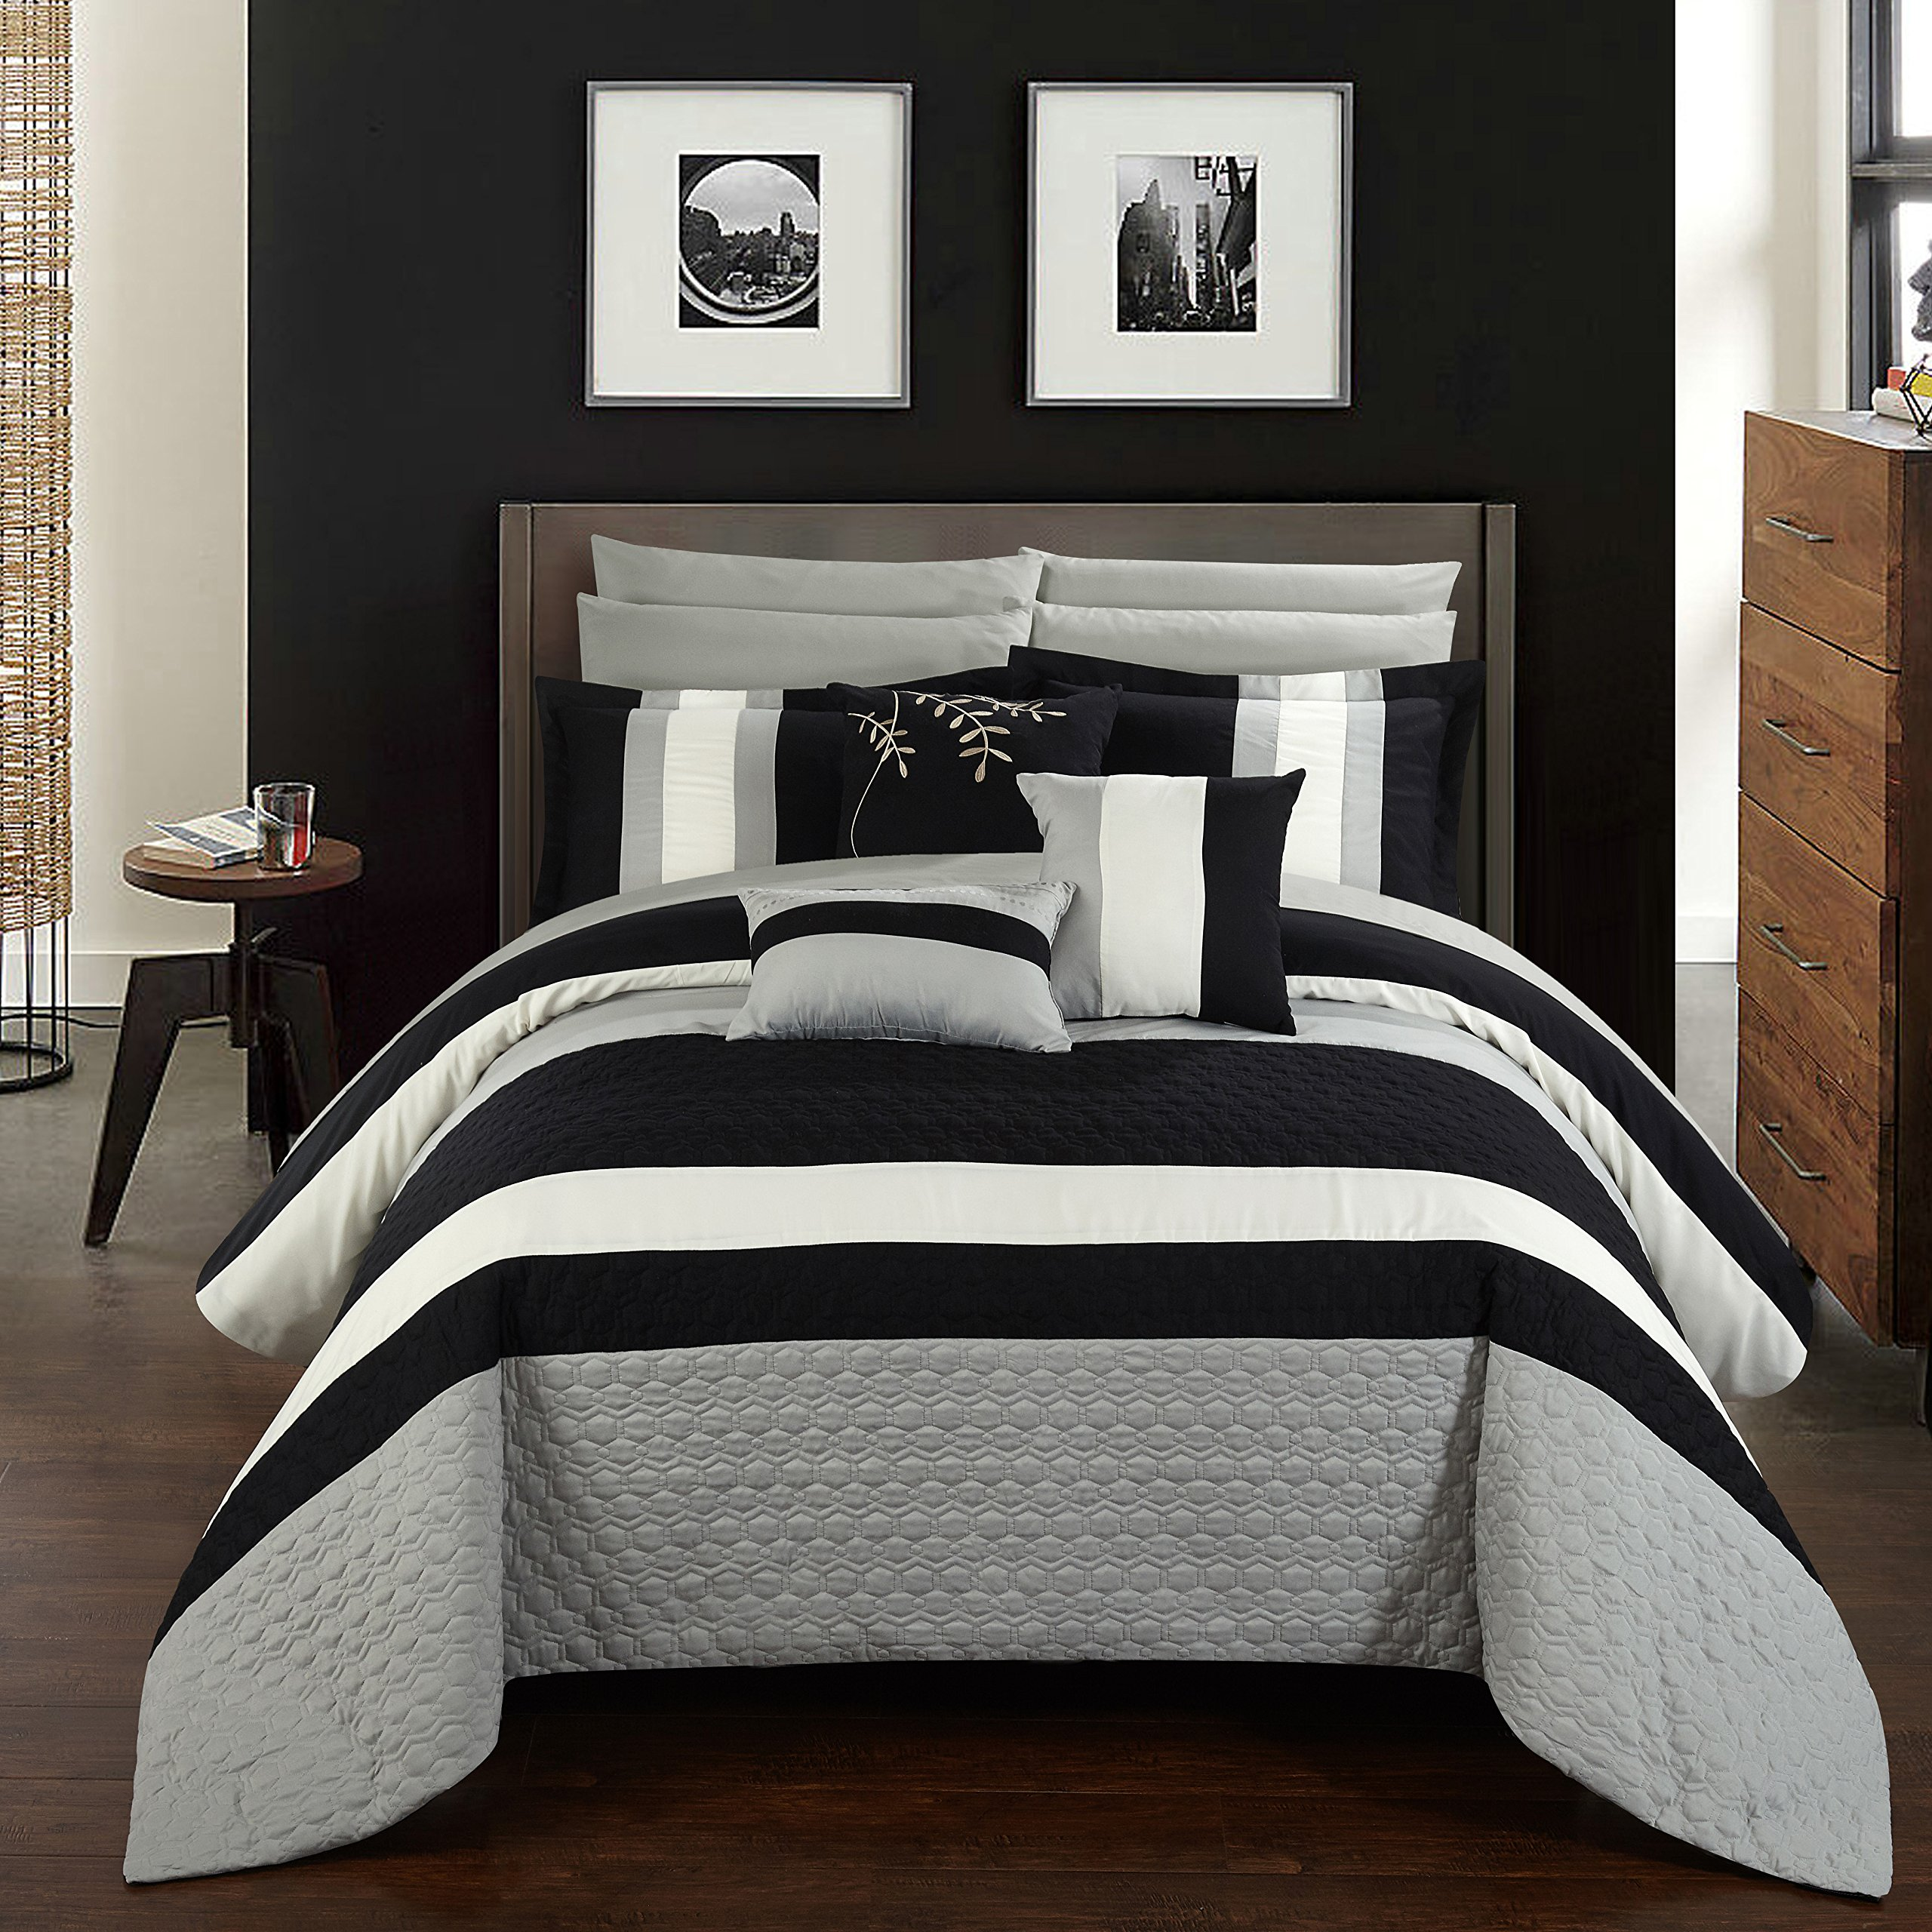 Chic Home CS2546-AN Pueblo 10Piece Pueblo Complete Bedroom Set with Octagon Embroidery Color Block Pattern. Queen Bed In A Bag Comforter Set Black with Sheet Set,Black,Queen